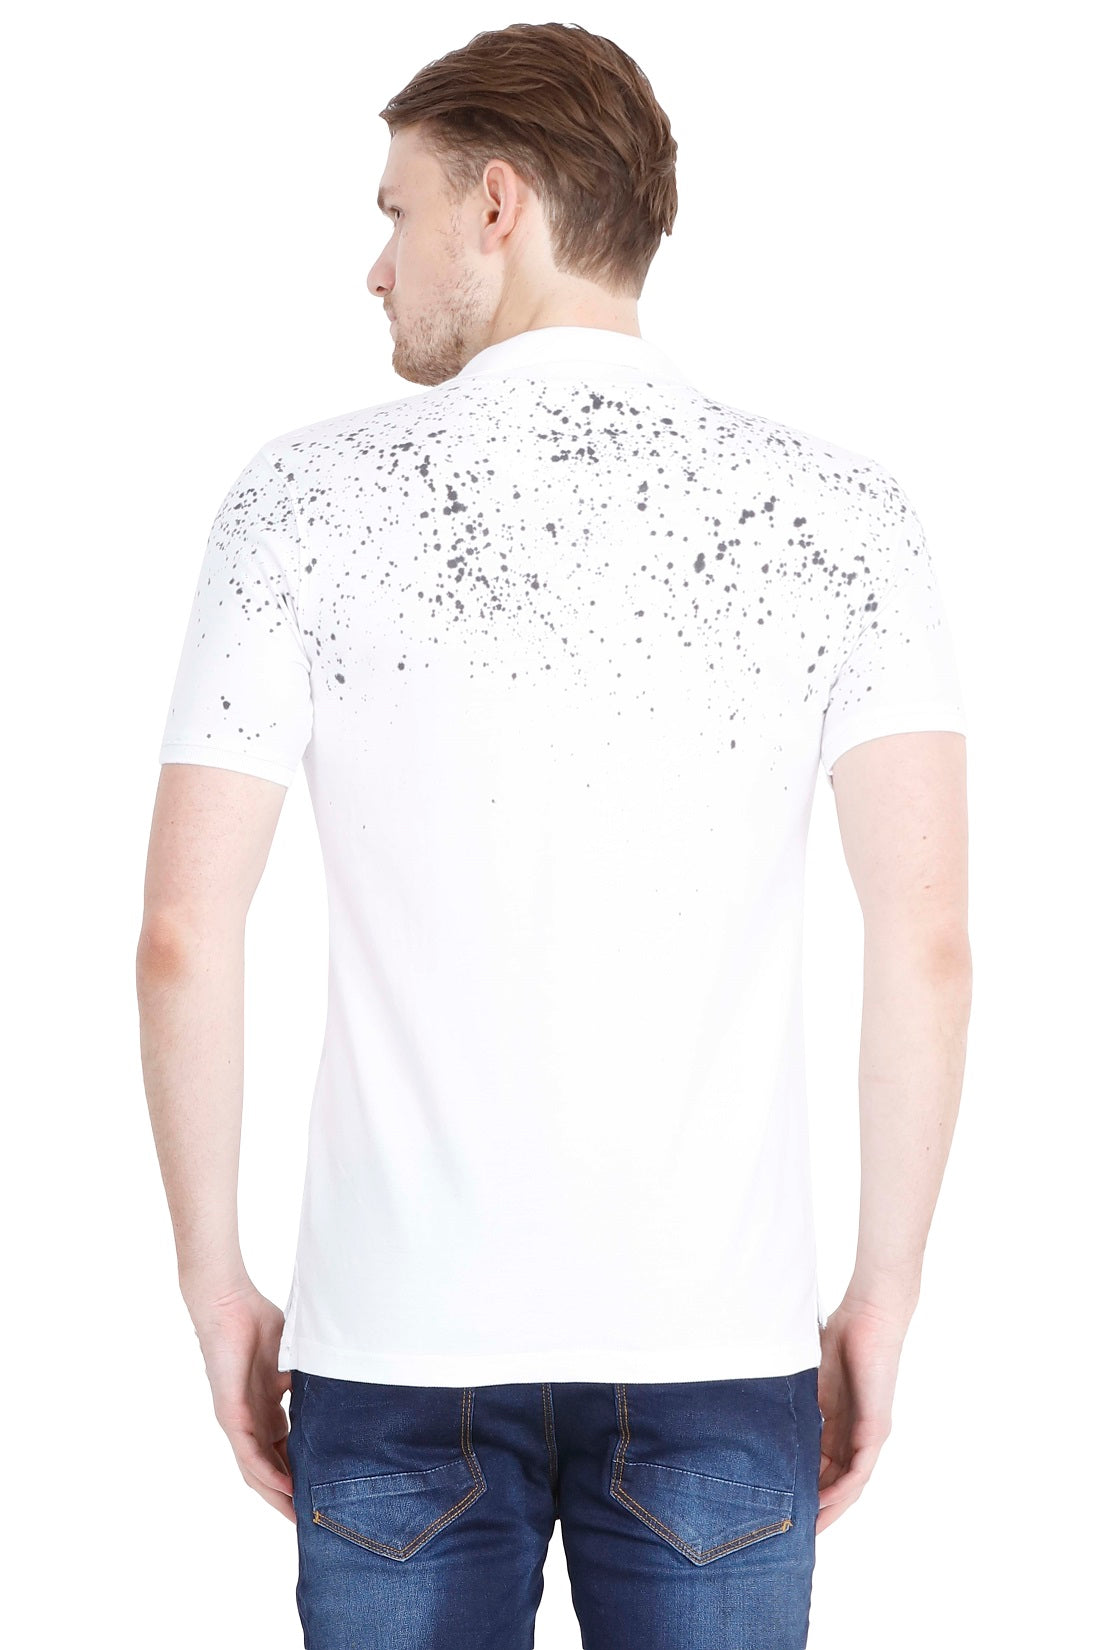 Hunt and Howe Men's Spray Printed White T-Shirt